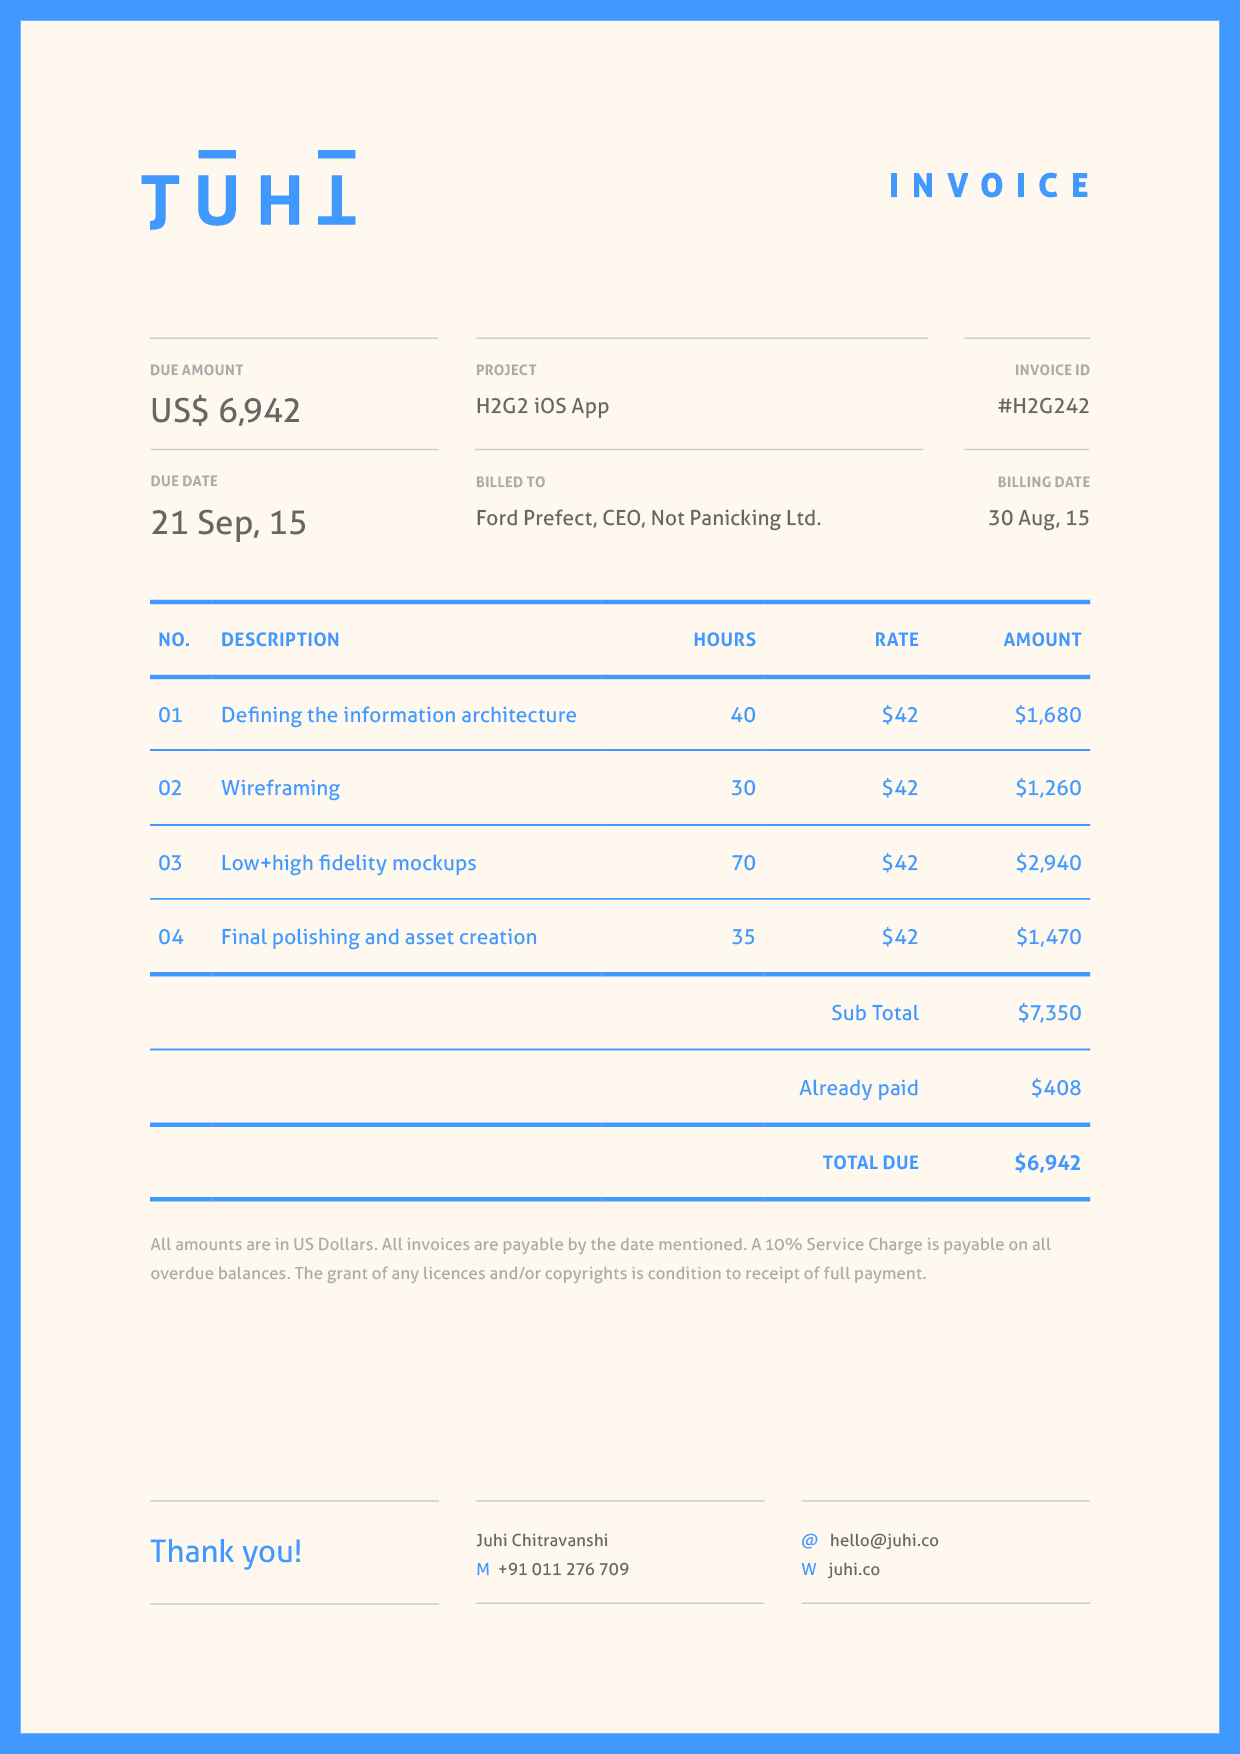 Usdgus  Wonderful Dont Hold Back On Your Invoice  Inspiring Designs  With Entrancing Invoice By Juhi Chitravanshi Follow With Easy On The Eye Fake A Receipt Also Sephora Returns No Receipt In Addition Free Printable Business Receipts And Receipt Reader App As Well As Cash Receipts And Disbursements Additionally Fake Receipts For Expense Reports From Inspirationfeedcom With Usdgus  Entrancing Dont Hold Back On Your Invoice  Inspiring Designs  With Easy On The Eye Invoice By Juhi Chitravanshi Follow And Wonderful Fake A Receipt Also Sephora Returns No Receipt In Addition Free Printable Business Receipts From Inspirationfeedcom